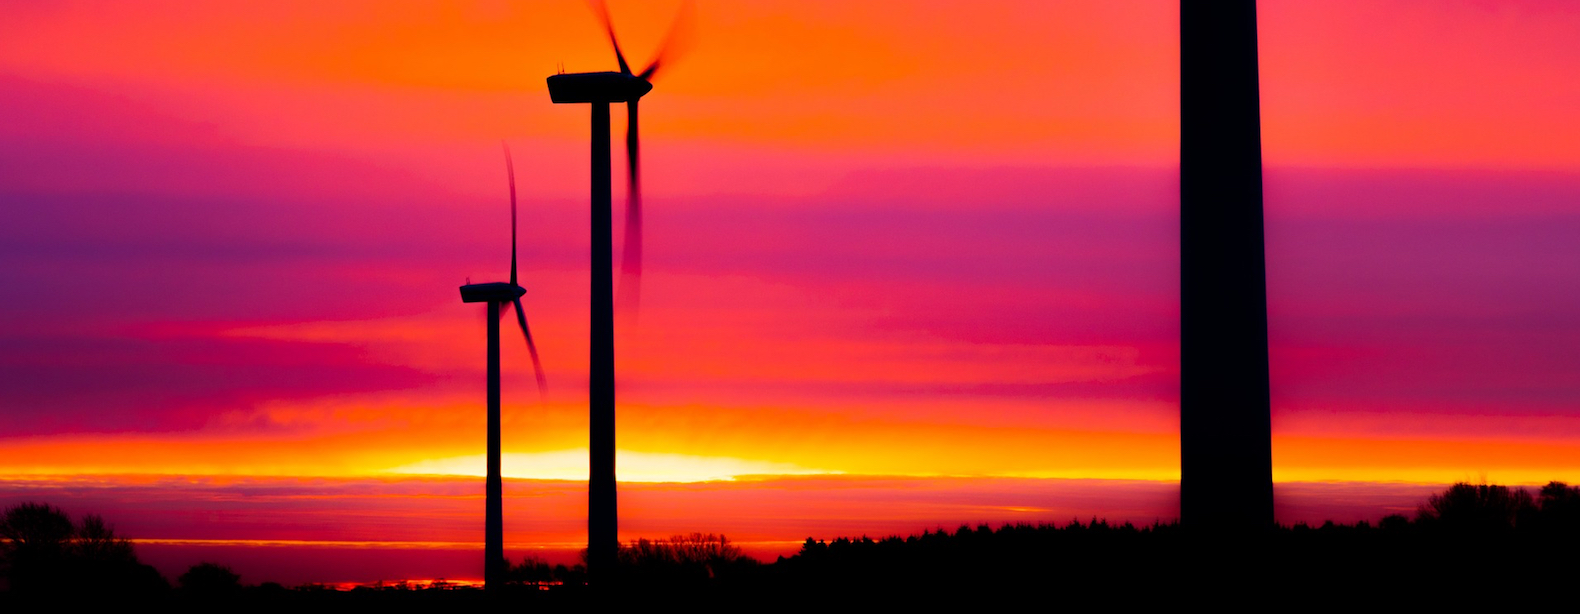 Wind power could supply 20% of global electricity by 2030